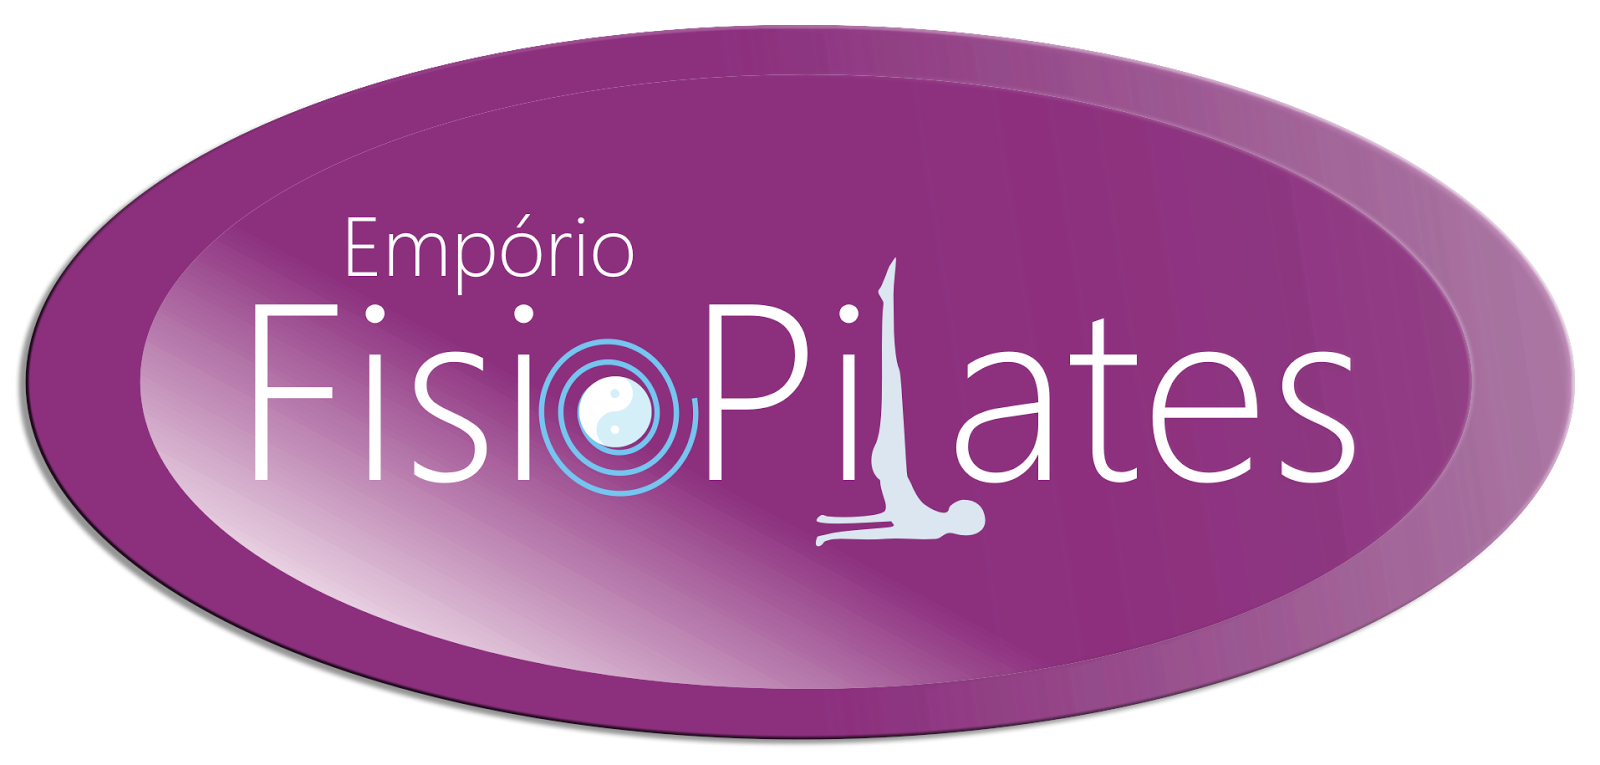 Empório Pilates - photo